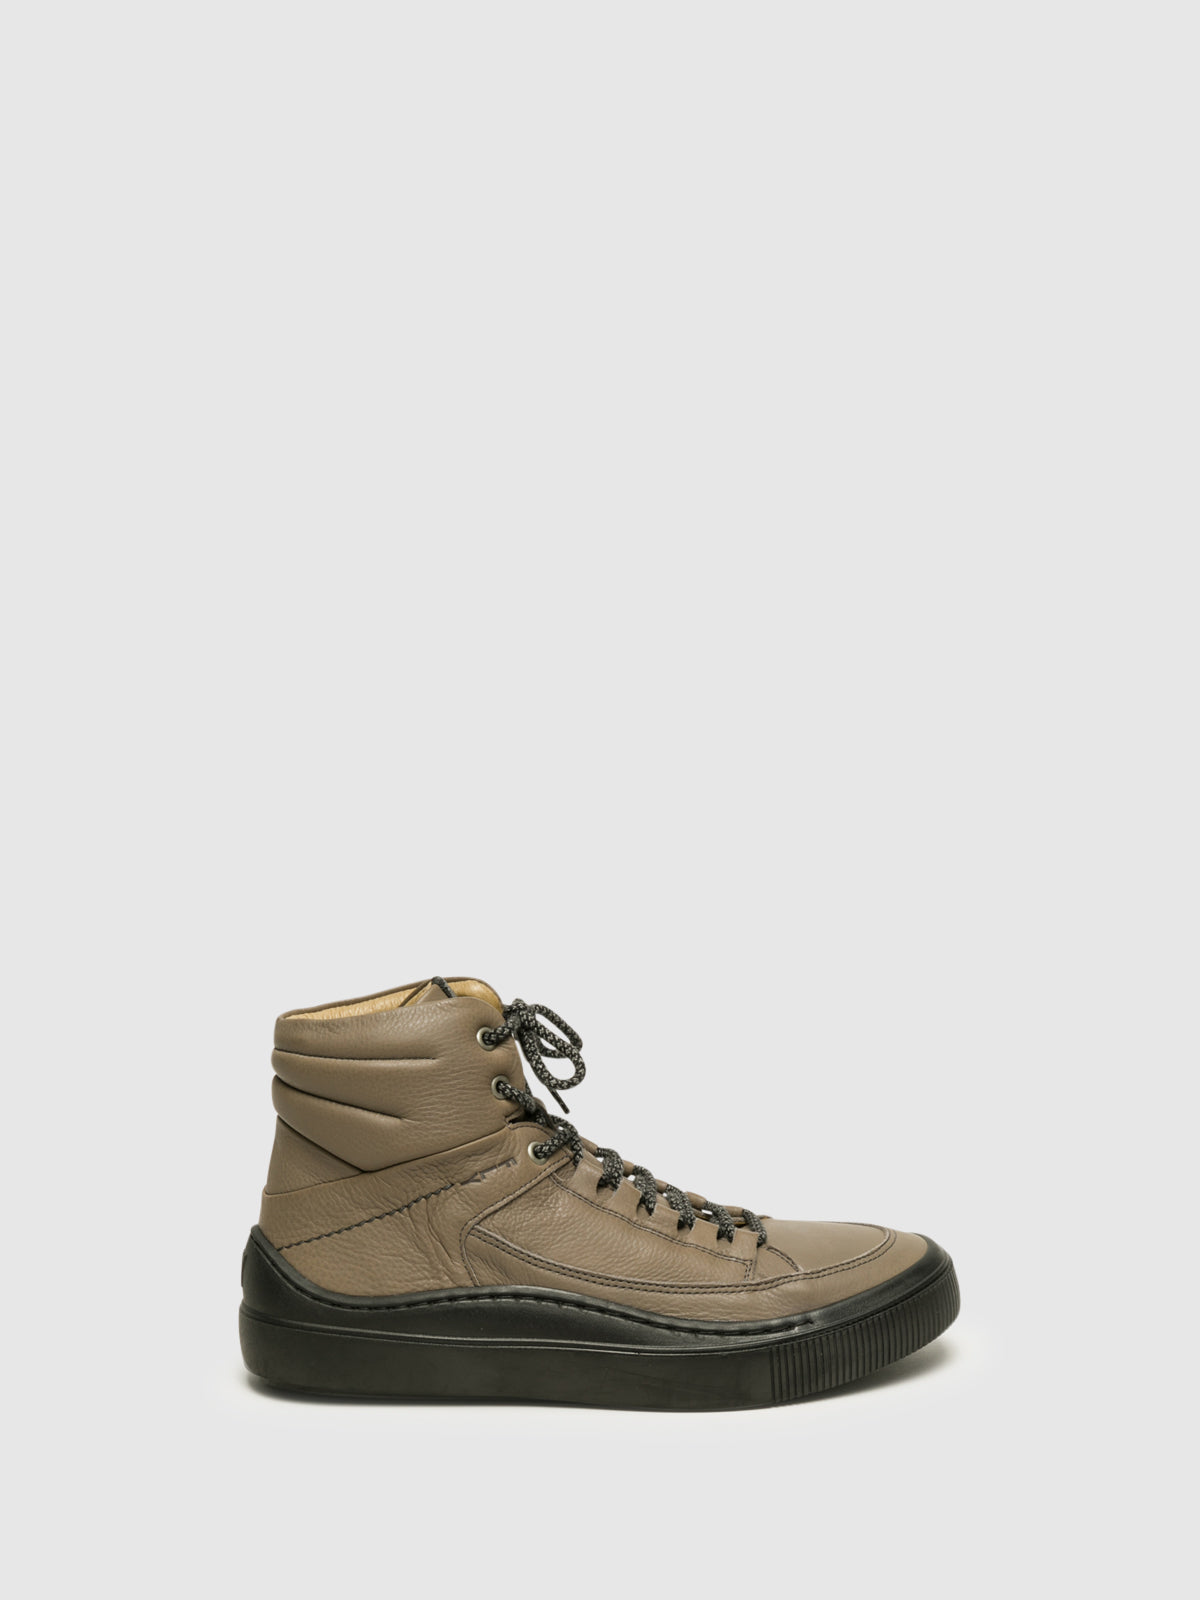 Fly London Gray Hi-Top Sneakers